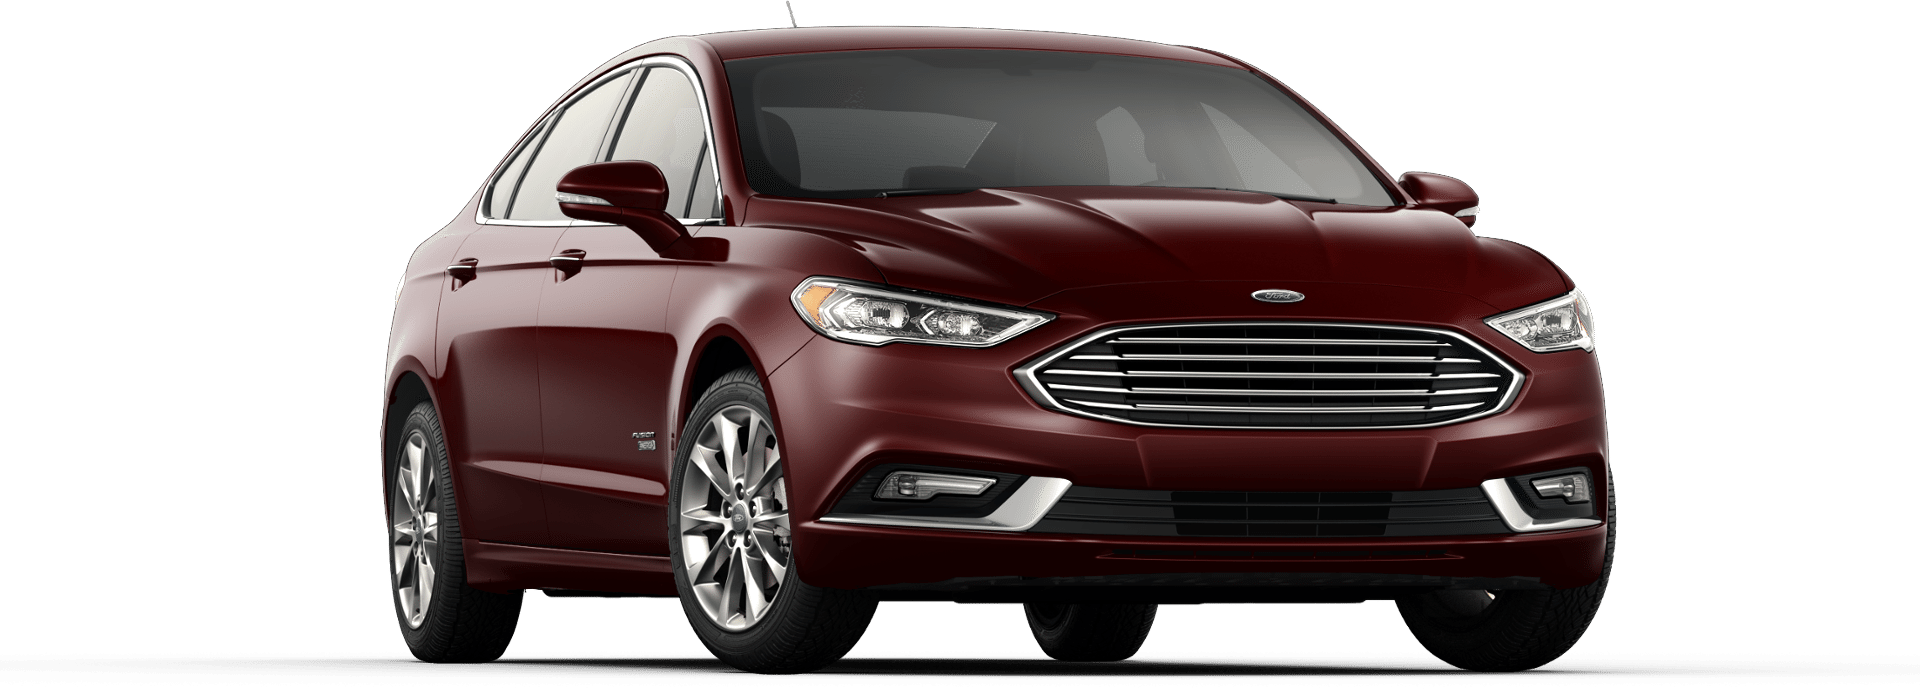 2018 ford fusion lease in red bank george wall ford. Black Bedroom Furniture Sets. Home Design Ideas